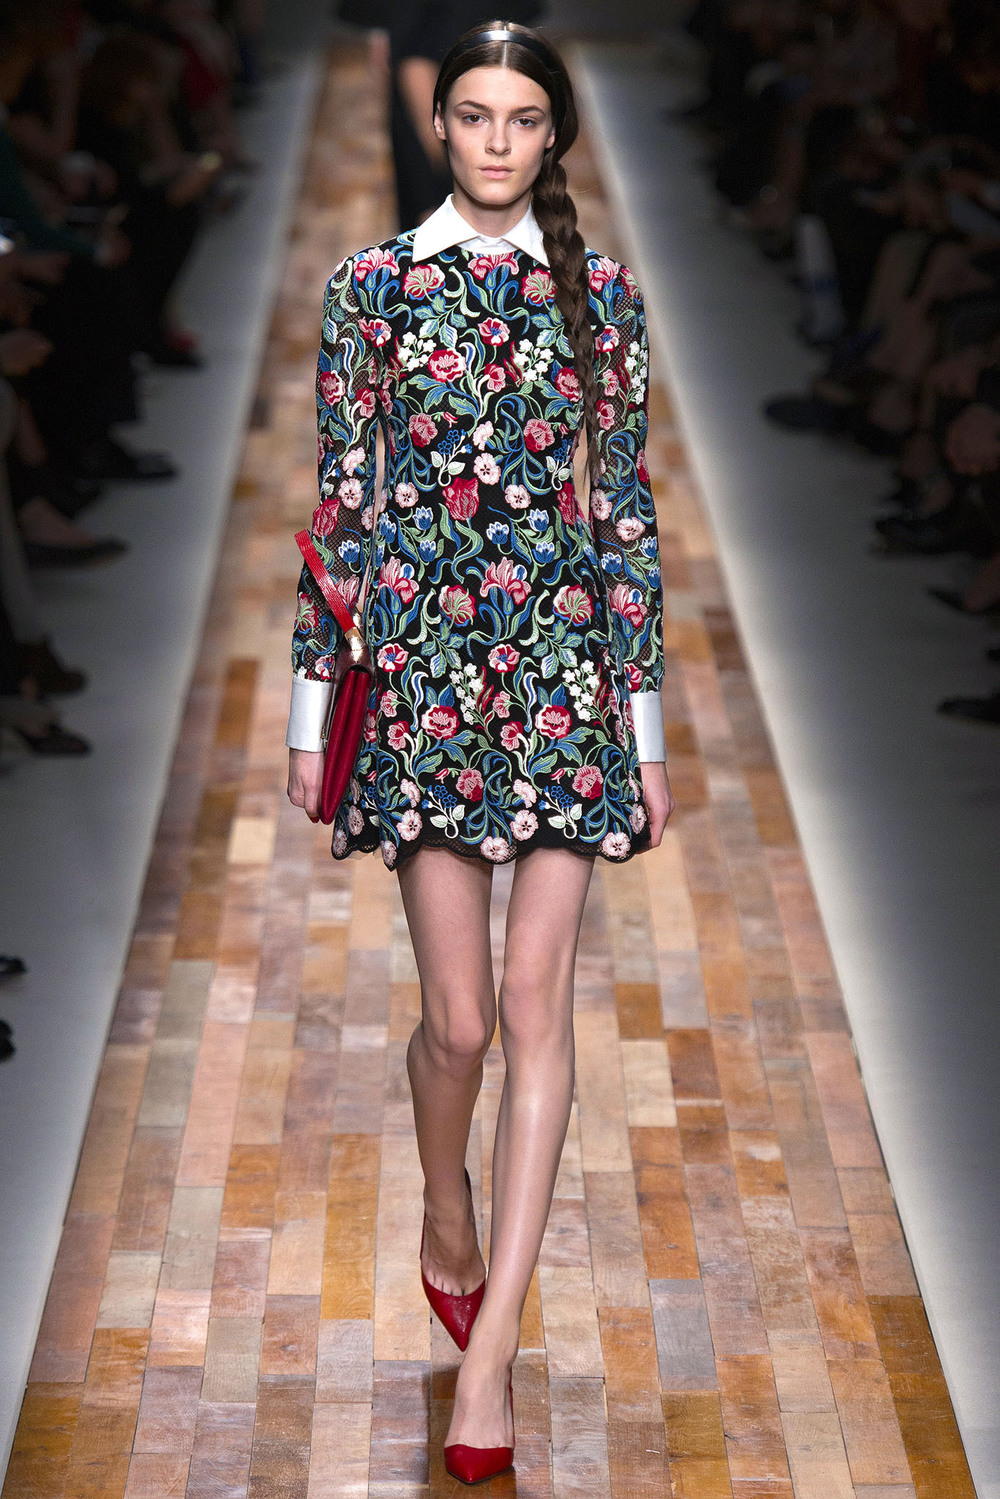 Smoother fabrics typically signal formality (Valentino FW 2014)